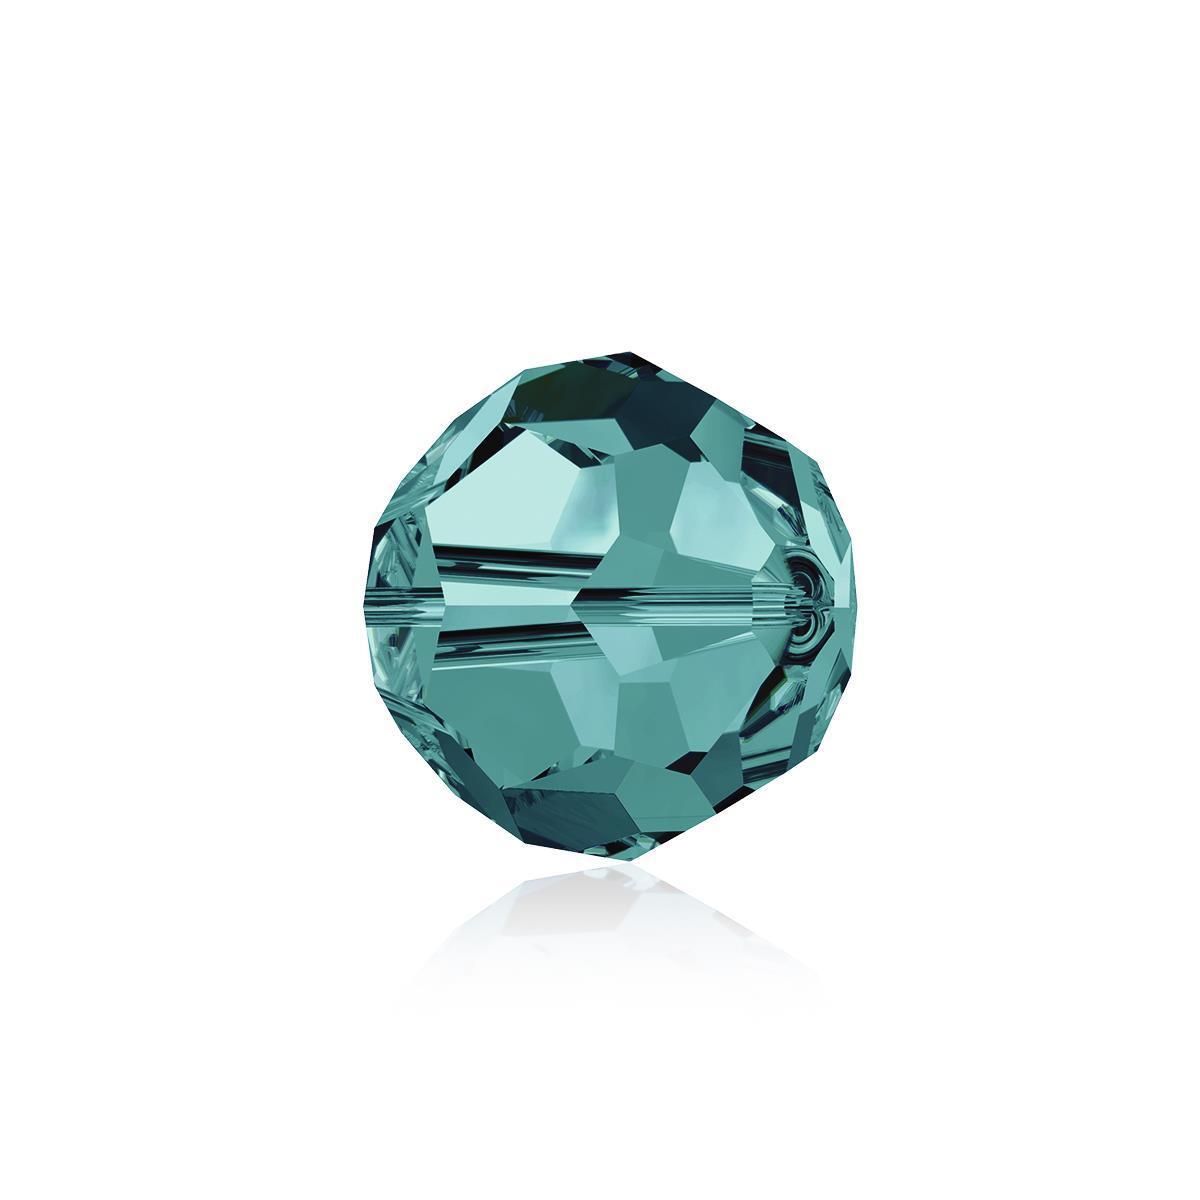 68b0acbcc Swarovski Crystal Beads - Pack of 6 Round 5000 - 8mm Blue Zircon |  JewelleryMaker.com